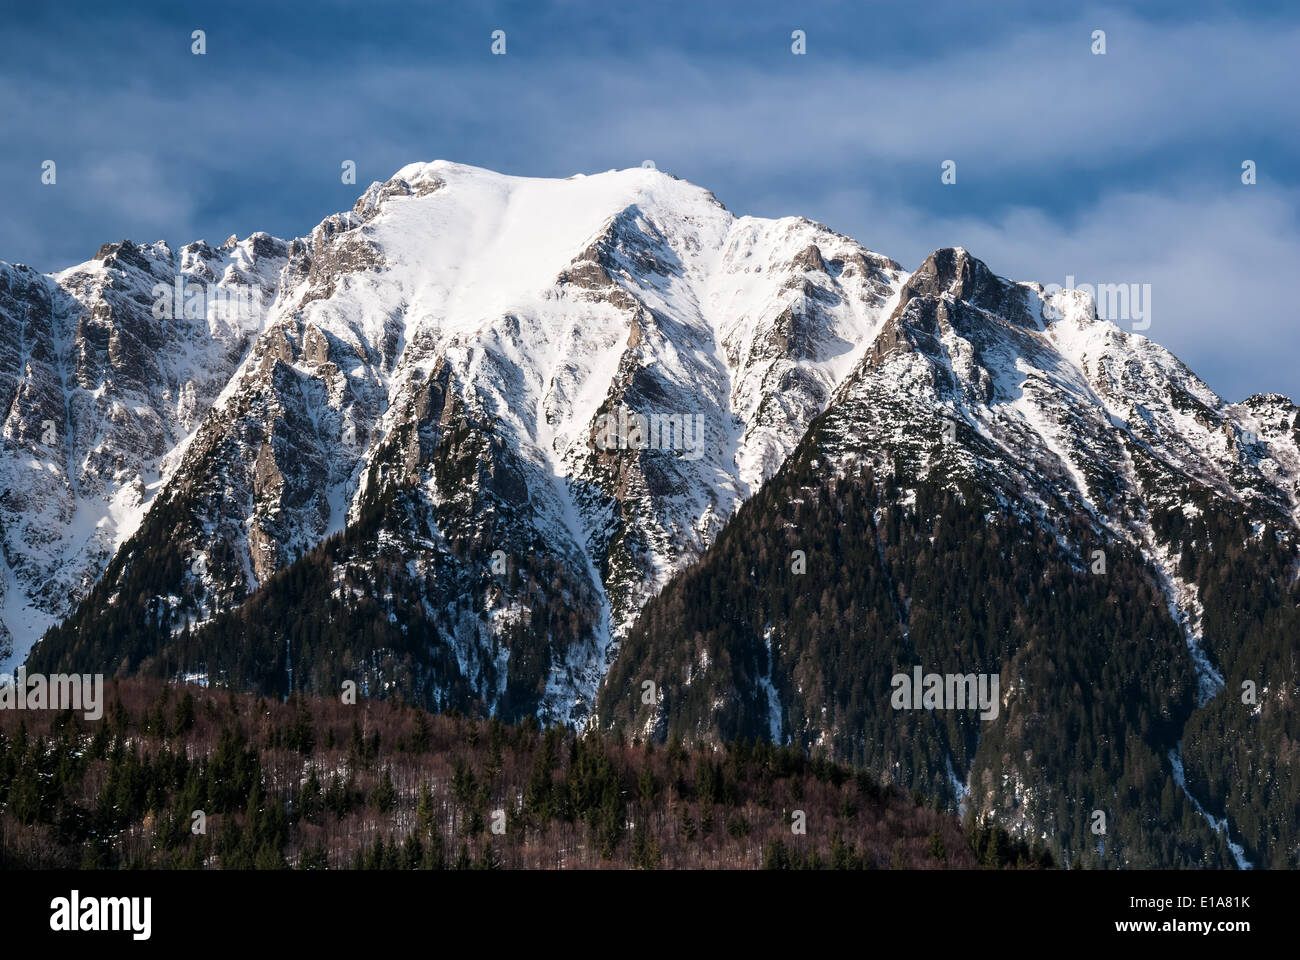 Outdoors landscape with Carpathian Mountains range in Romania, Bucegi Natural Park (2507 m) - Stock Image